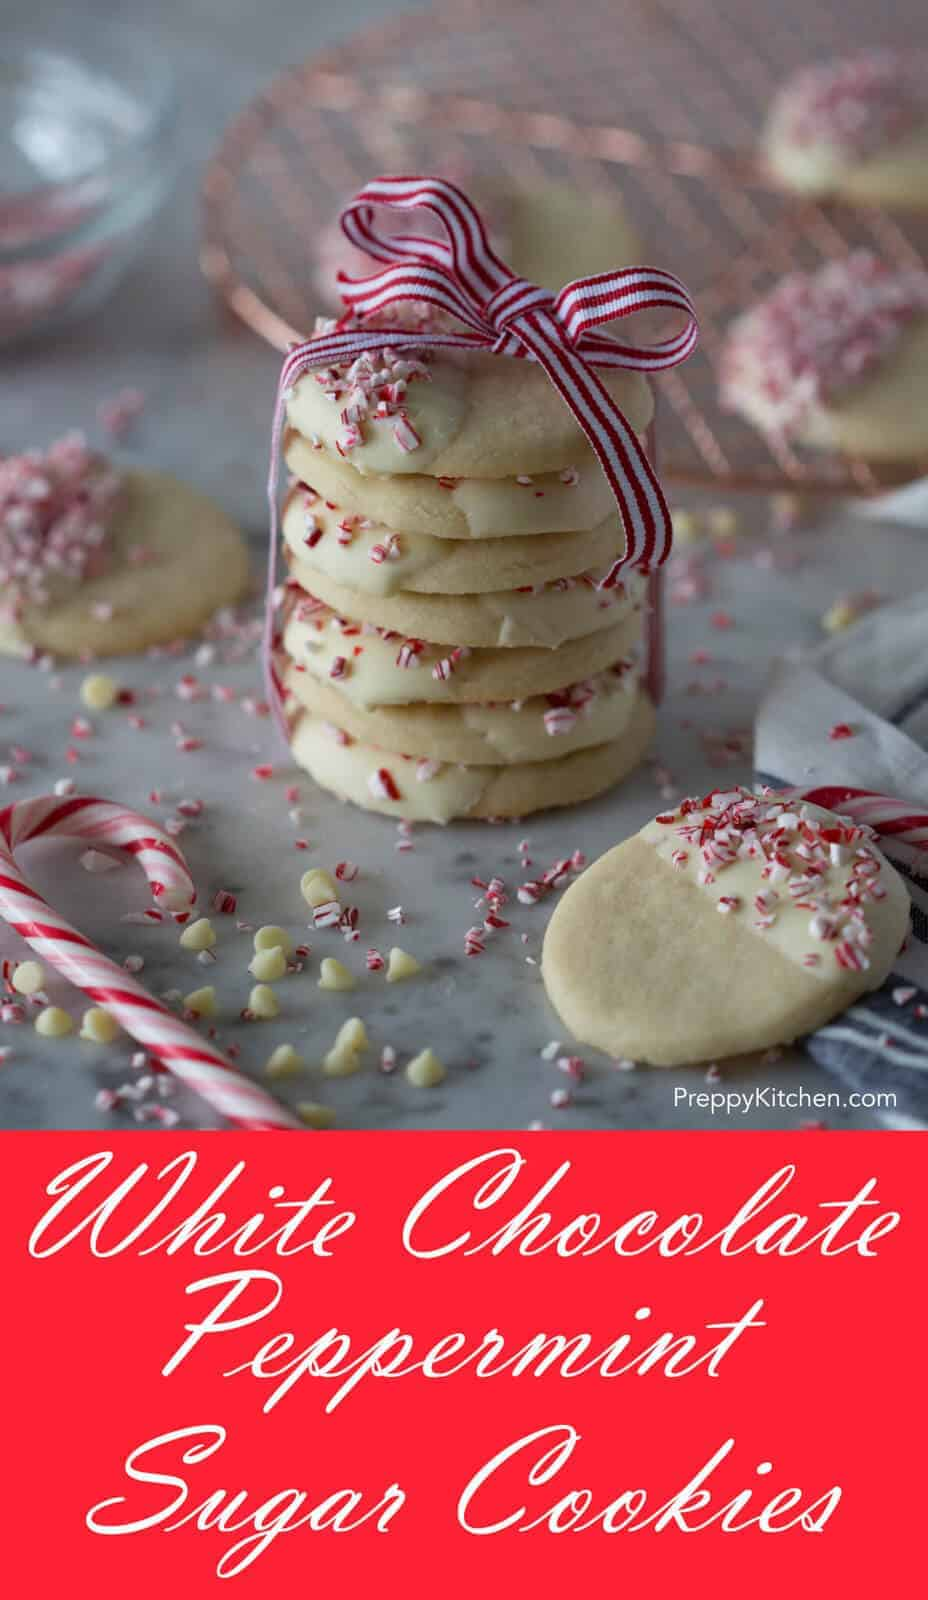 White Chocolate Peppermint Sugar Cookies